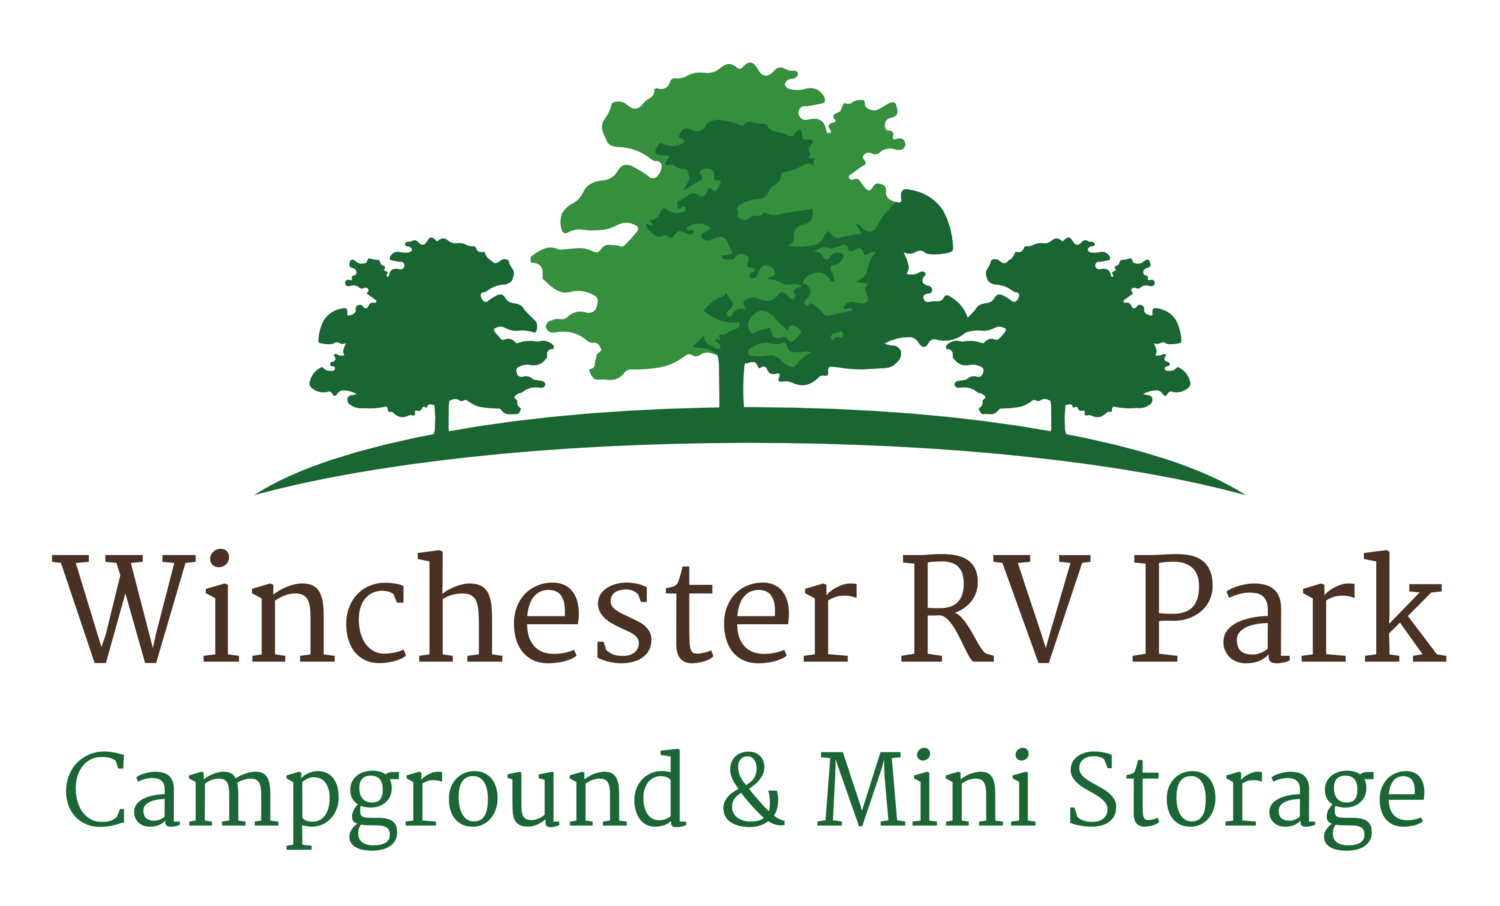 Winchester RV Park & Mini Storage